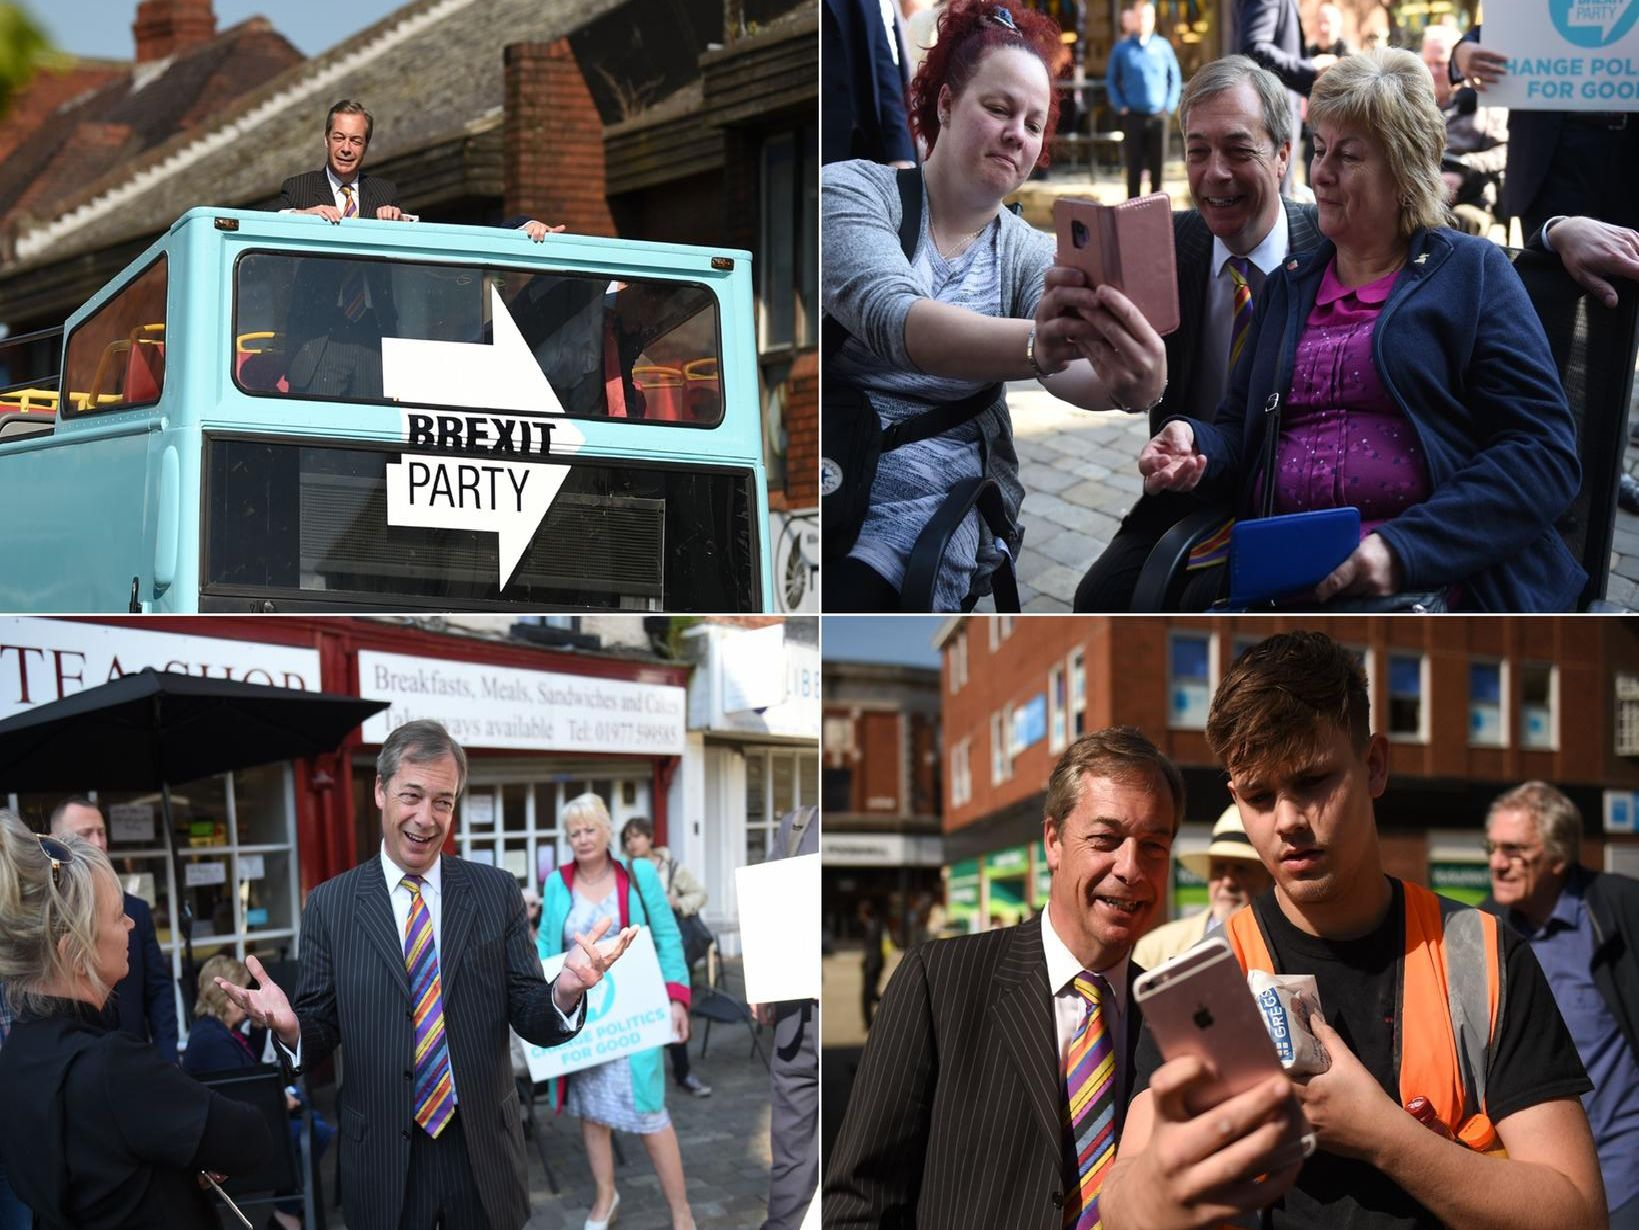 The day Brexit Party leader Nigel Farage visited Pontefract